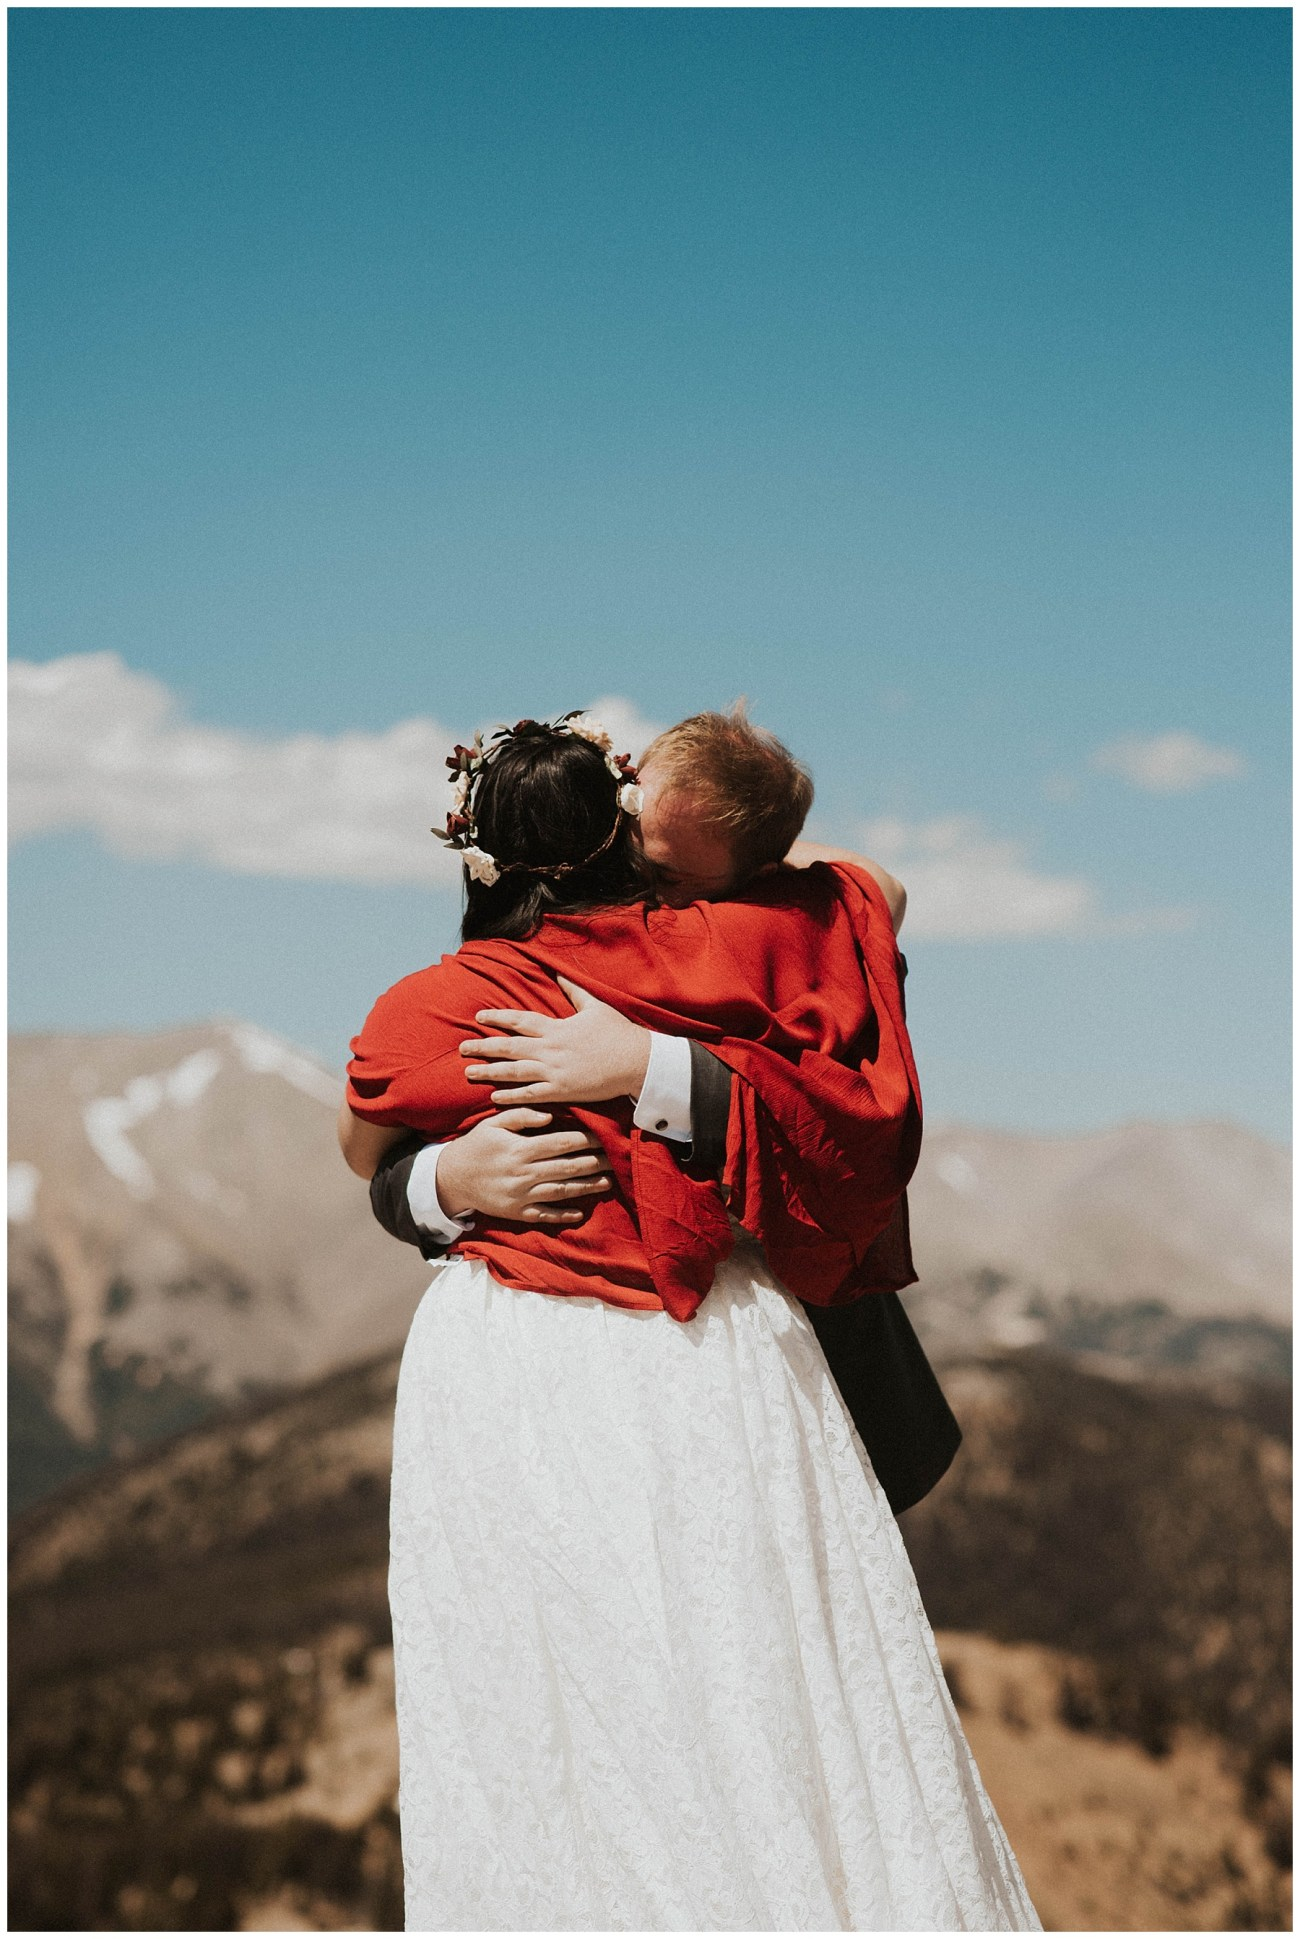 Ben + Lainee    Desert Colorado Wedding – Lauren F.otography b37ee71e57b